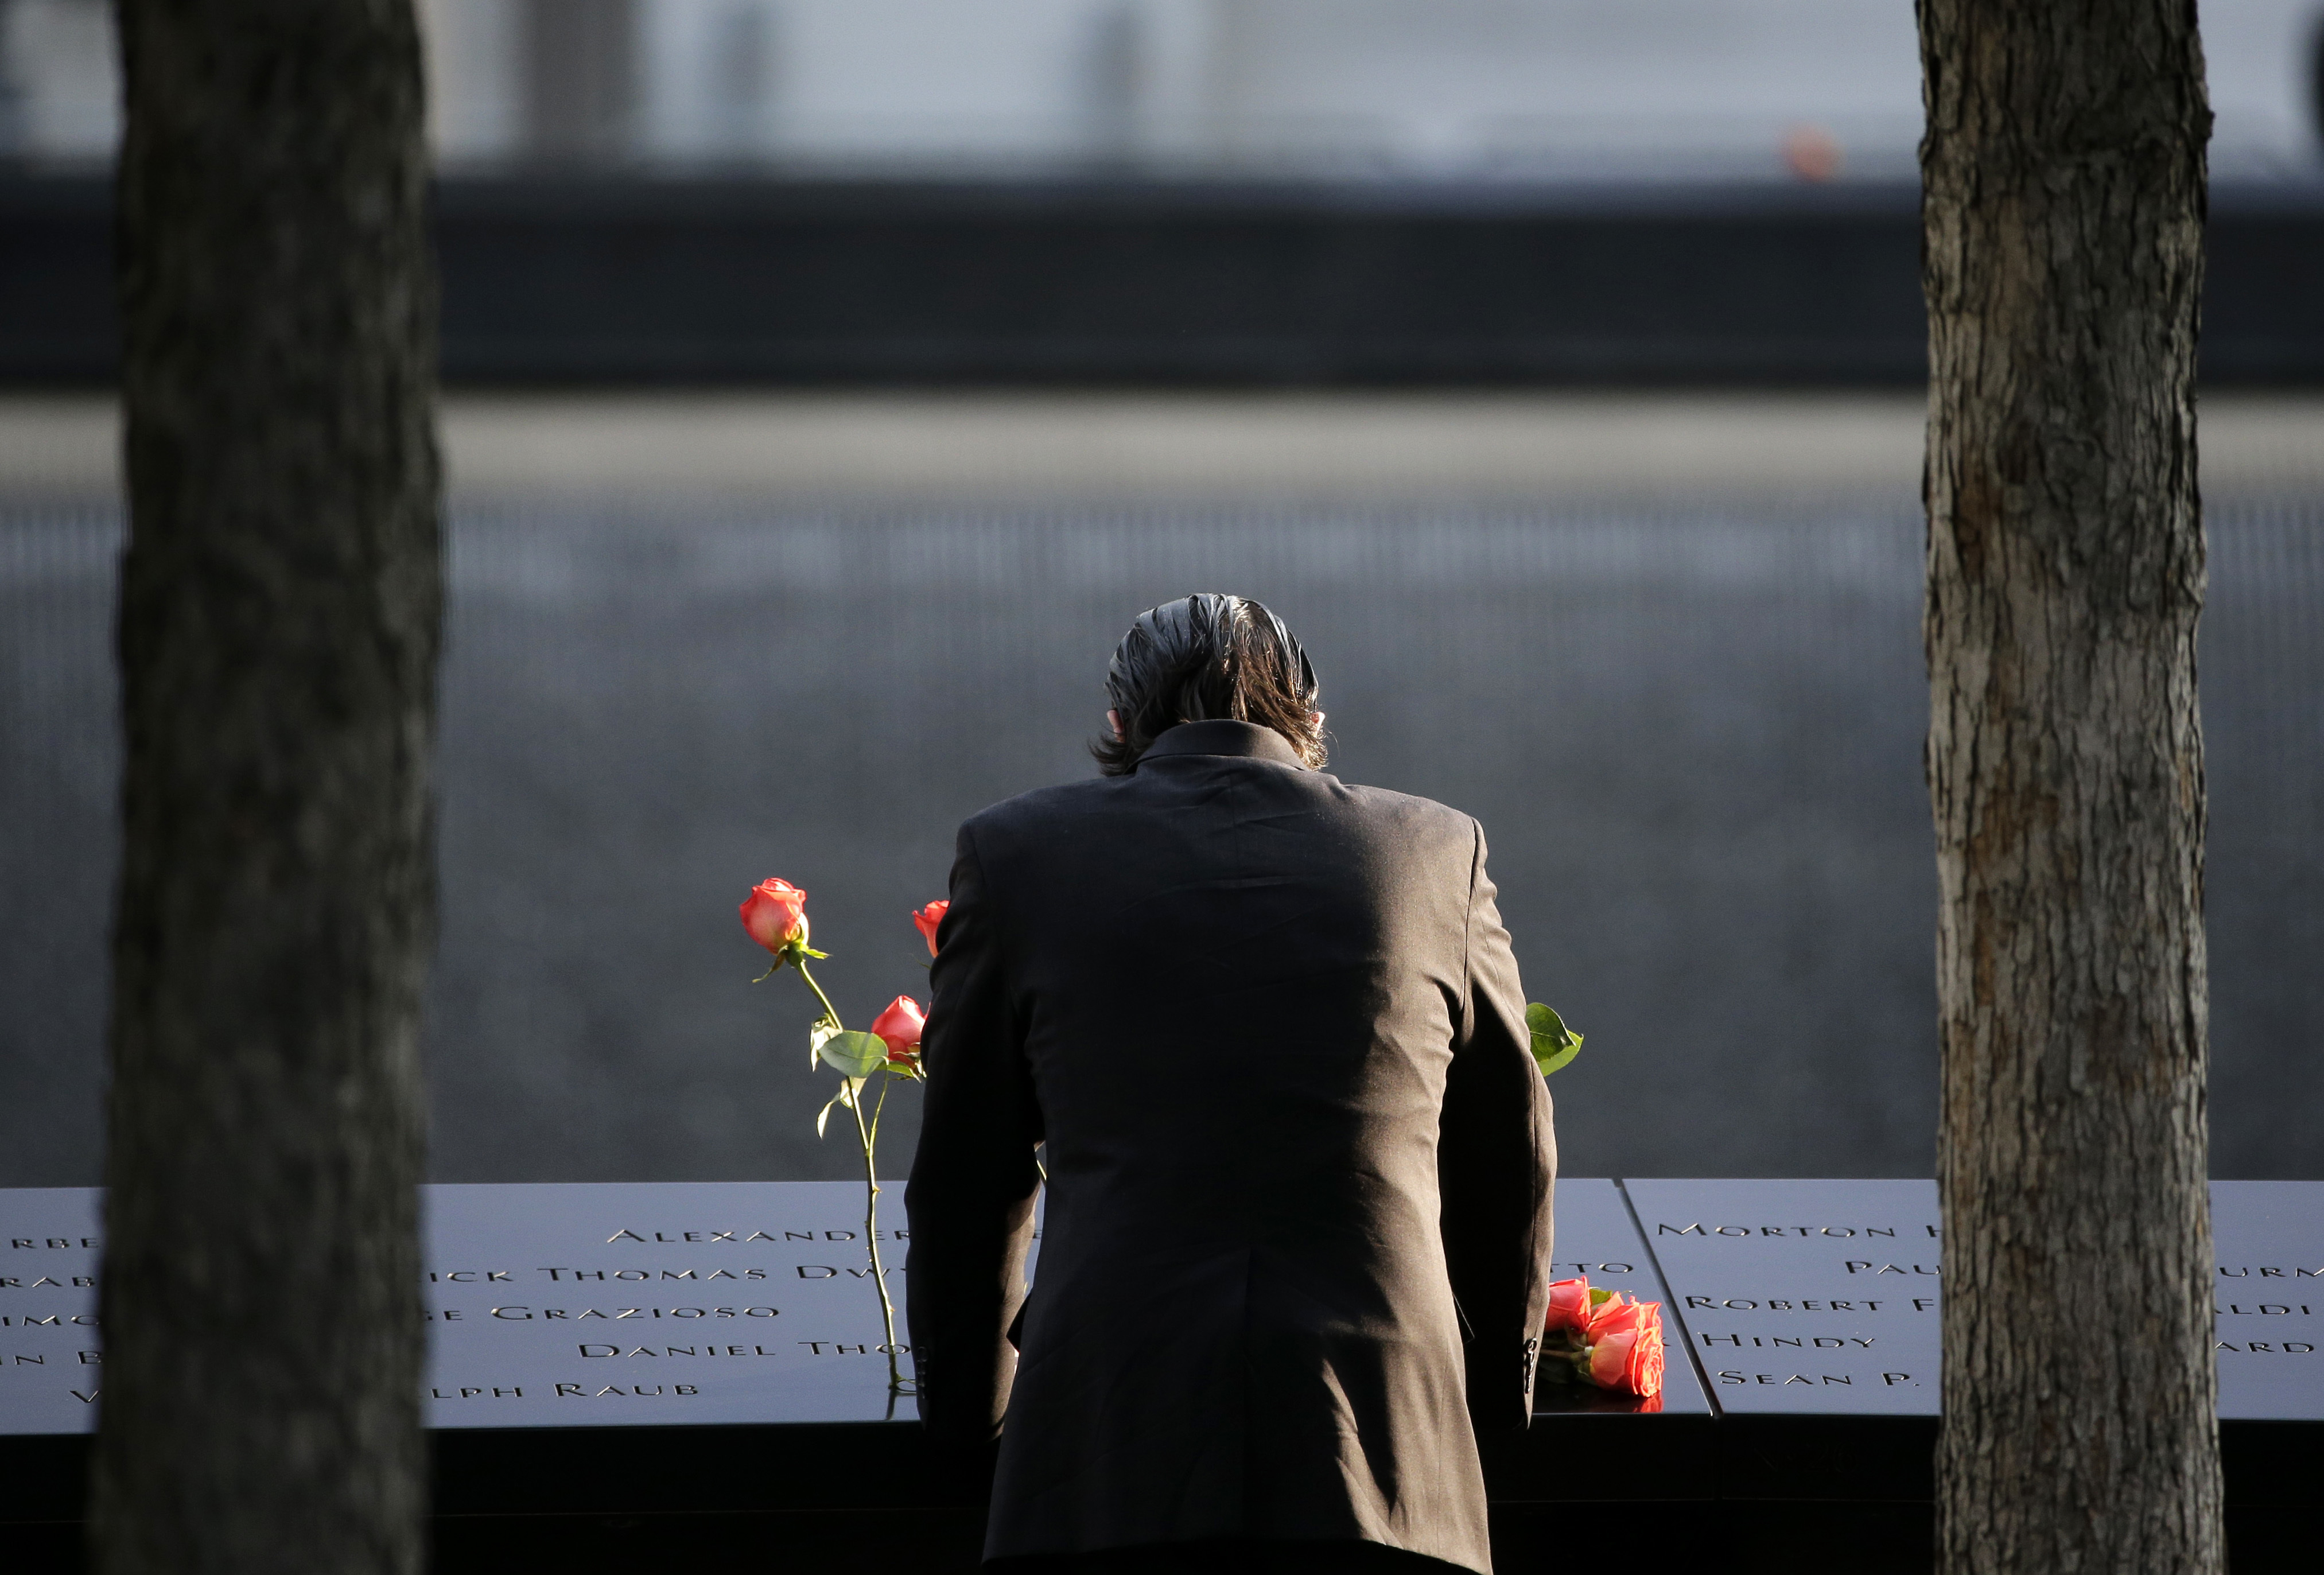 "<div class=""meta image-caption""><div class=""origin-logo origin-image none""><span>none</span></div><span class=""caption-text"">A man stands at the edge of a waterfall pool at ground zero during a ceremony on the 16th anniversary of the 9/11 attacks in New York.  Since September 11, 2001. (AP Photo/Seth Wenig)</span></div>"